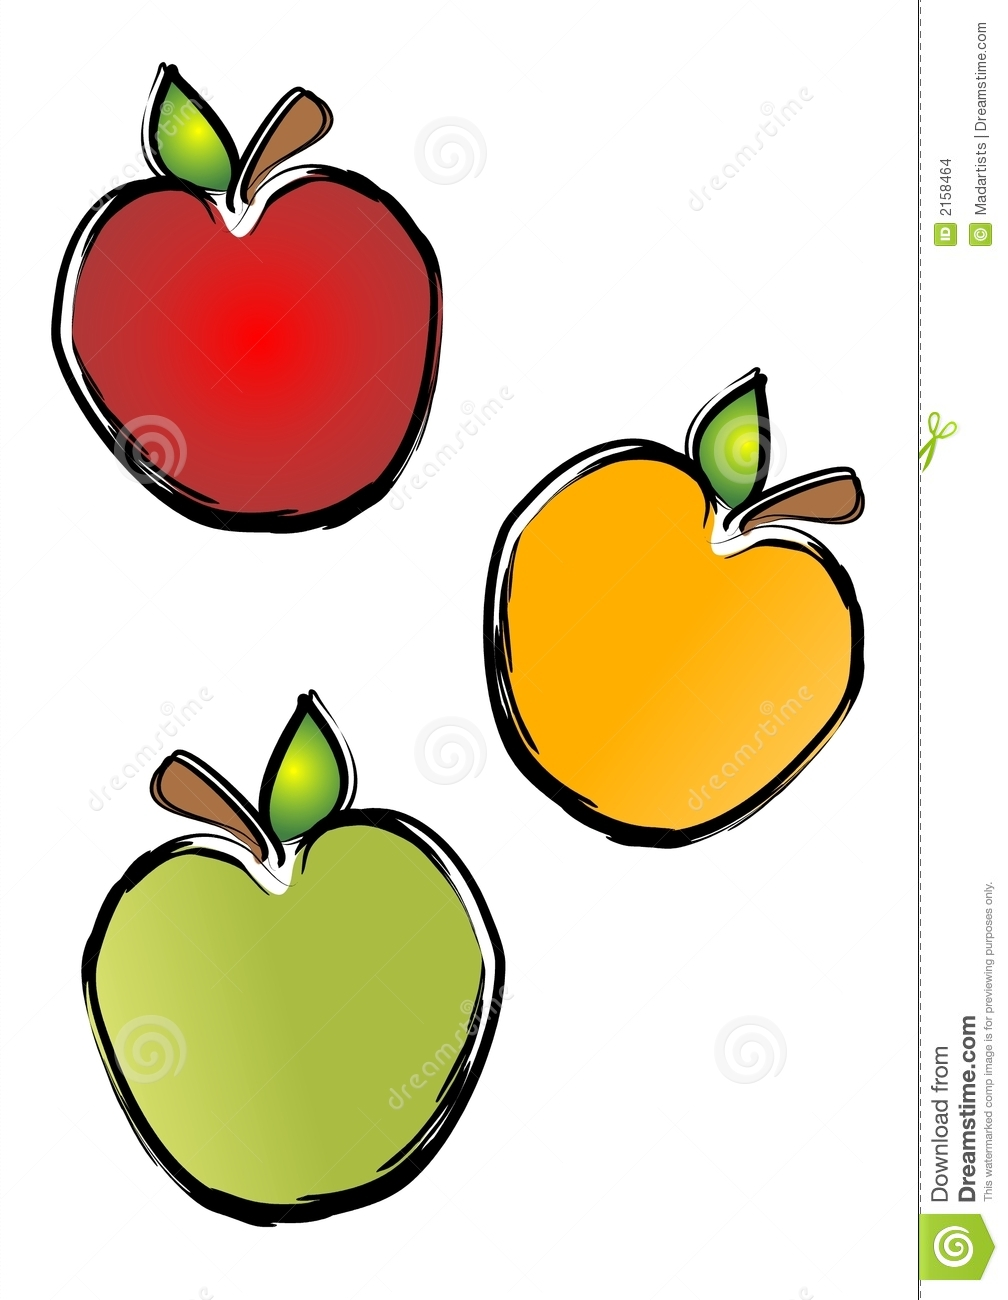 Colouful clipart apple #11